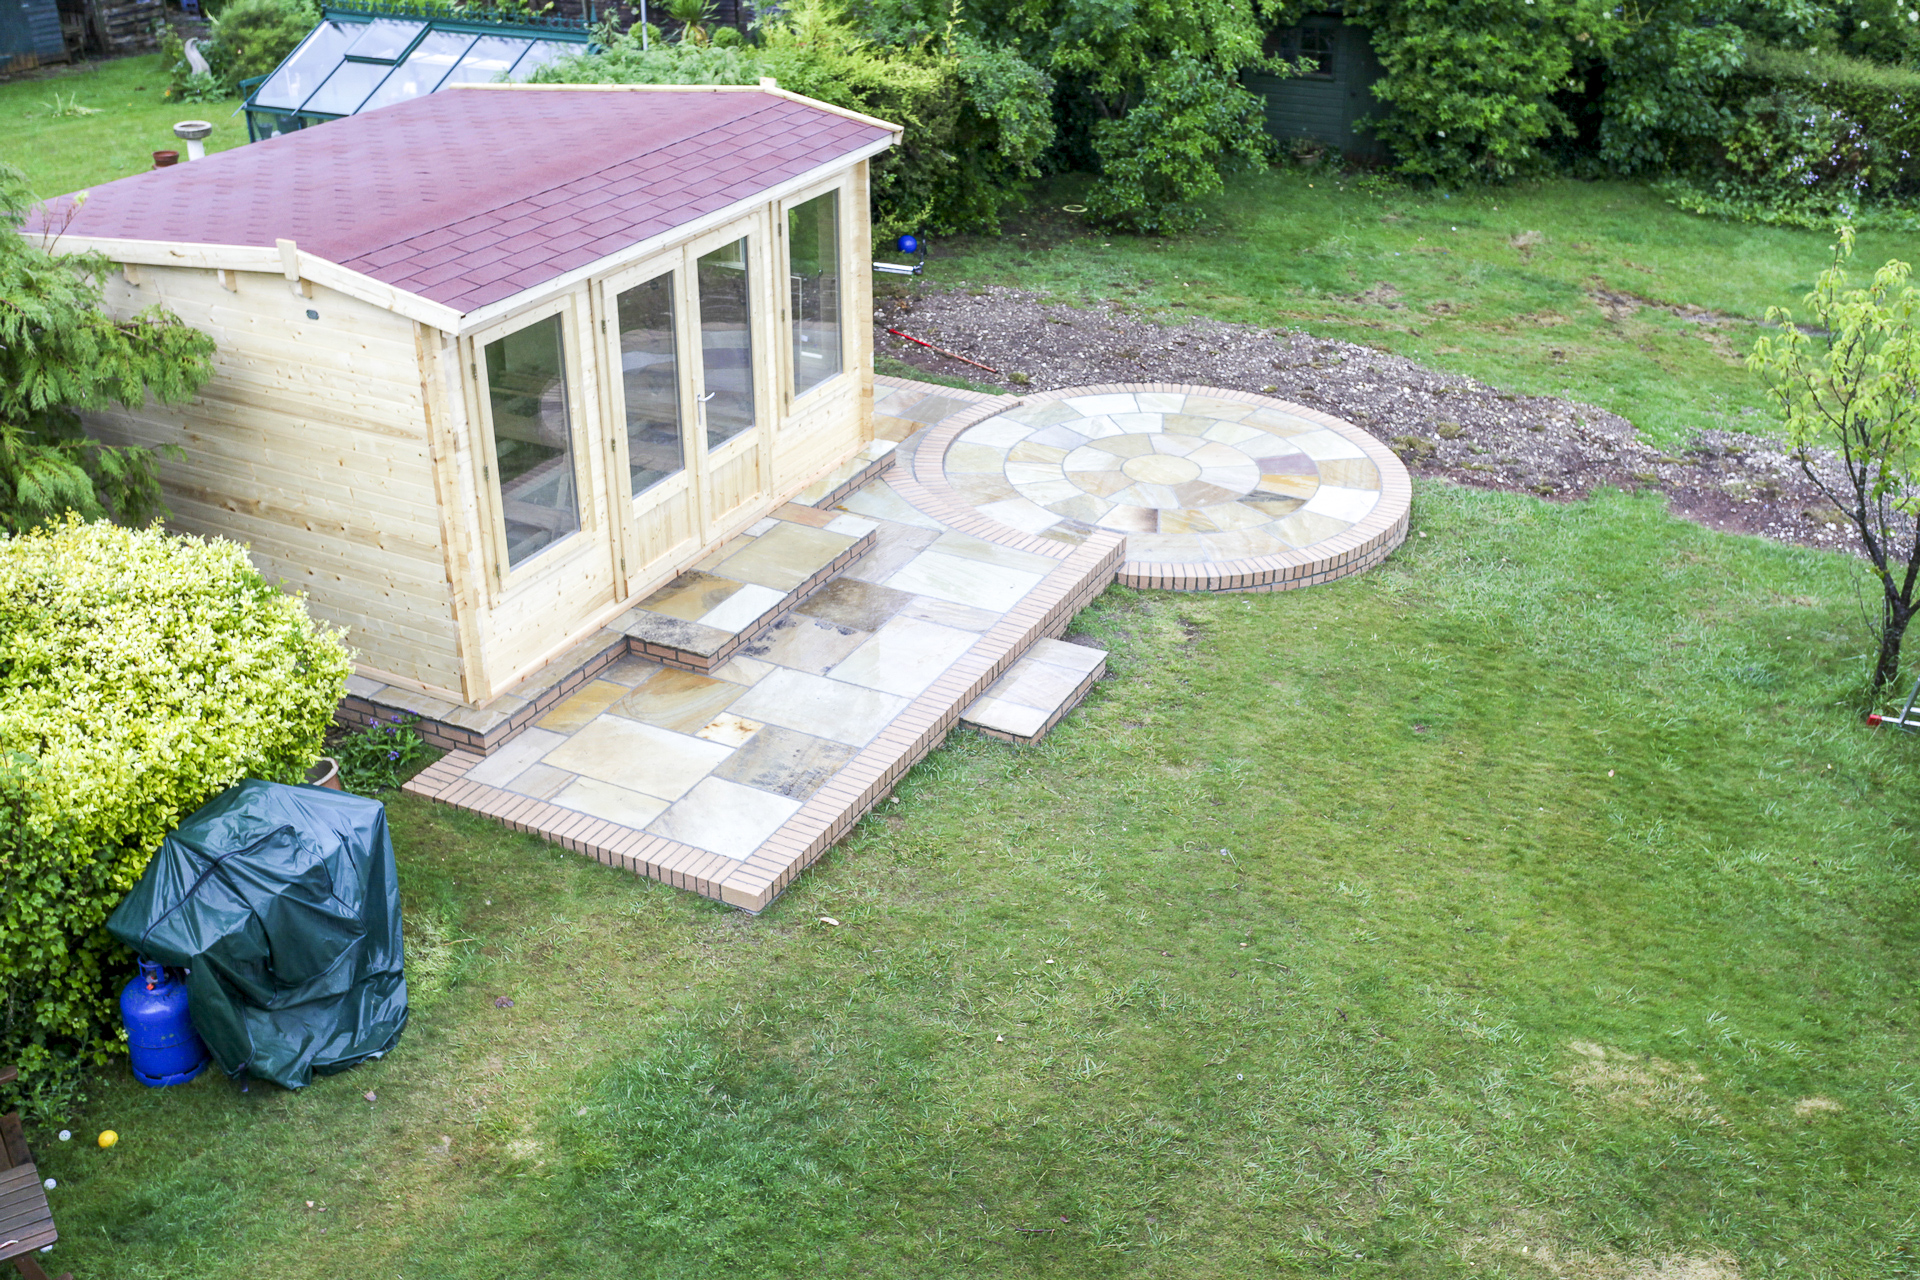 Summer House in place